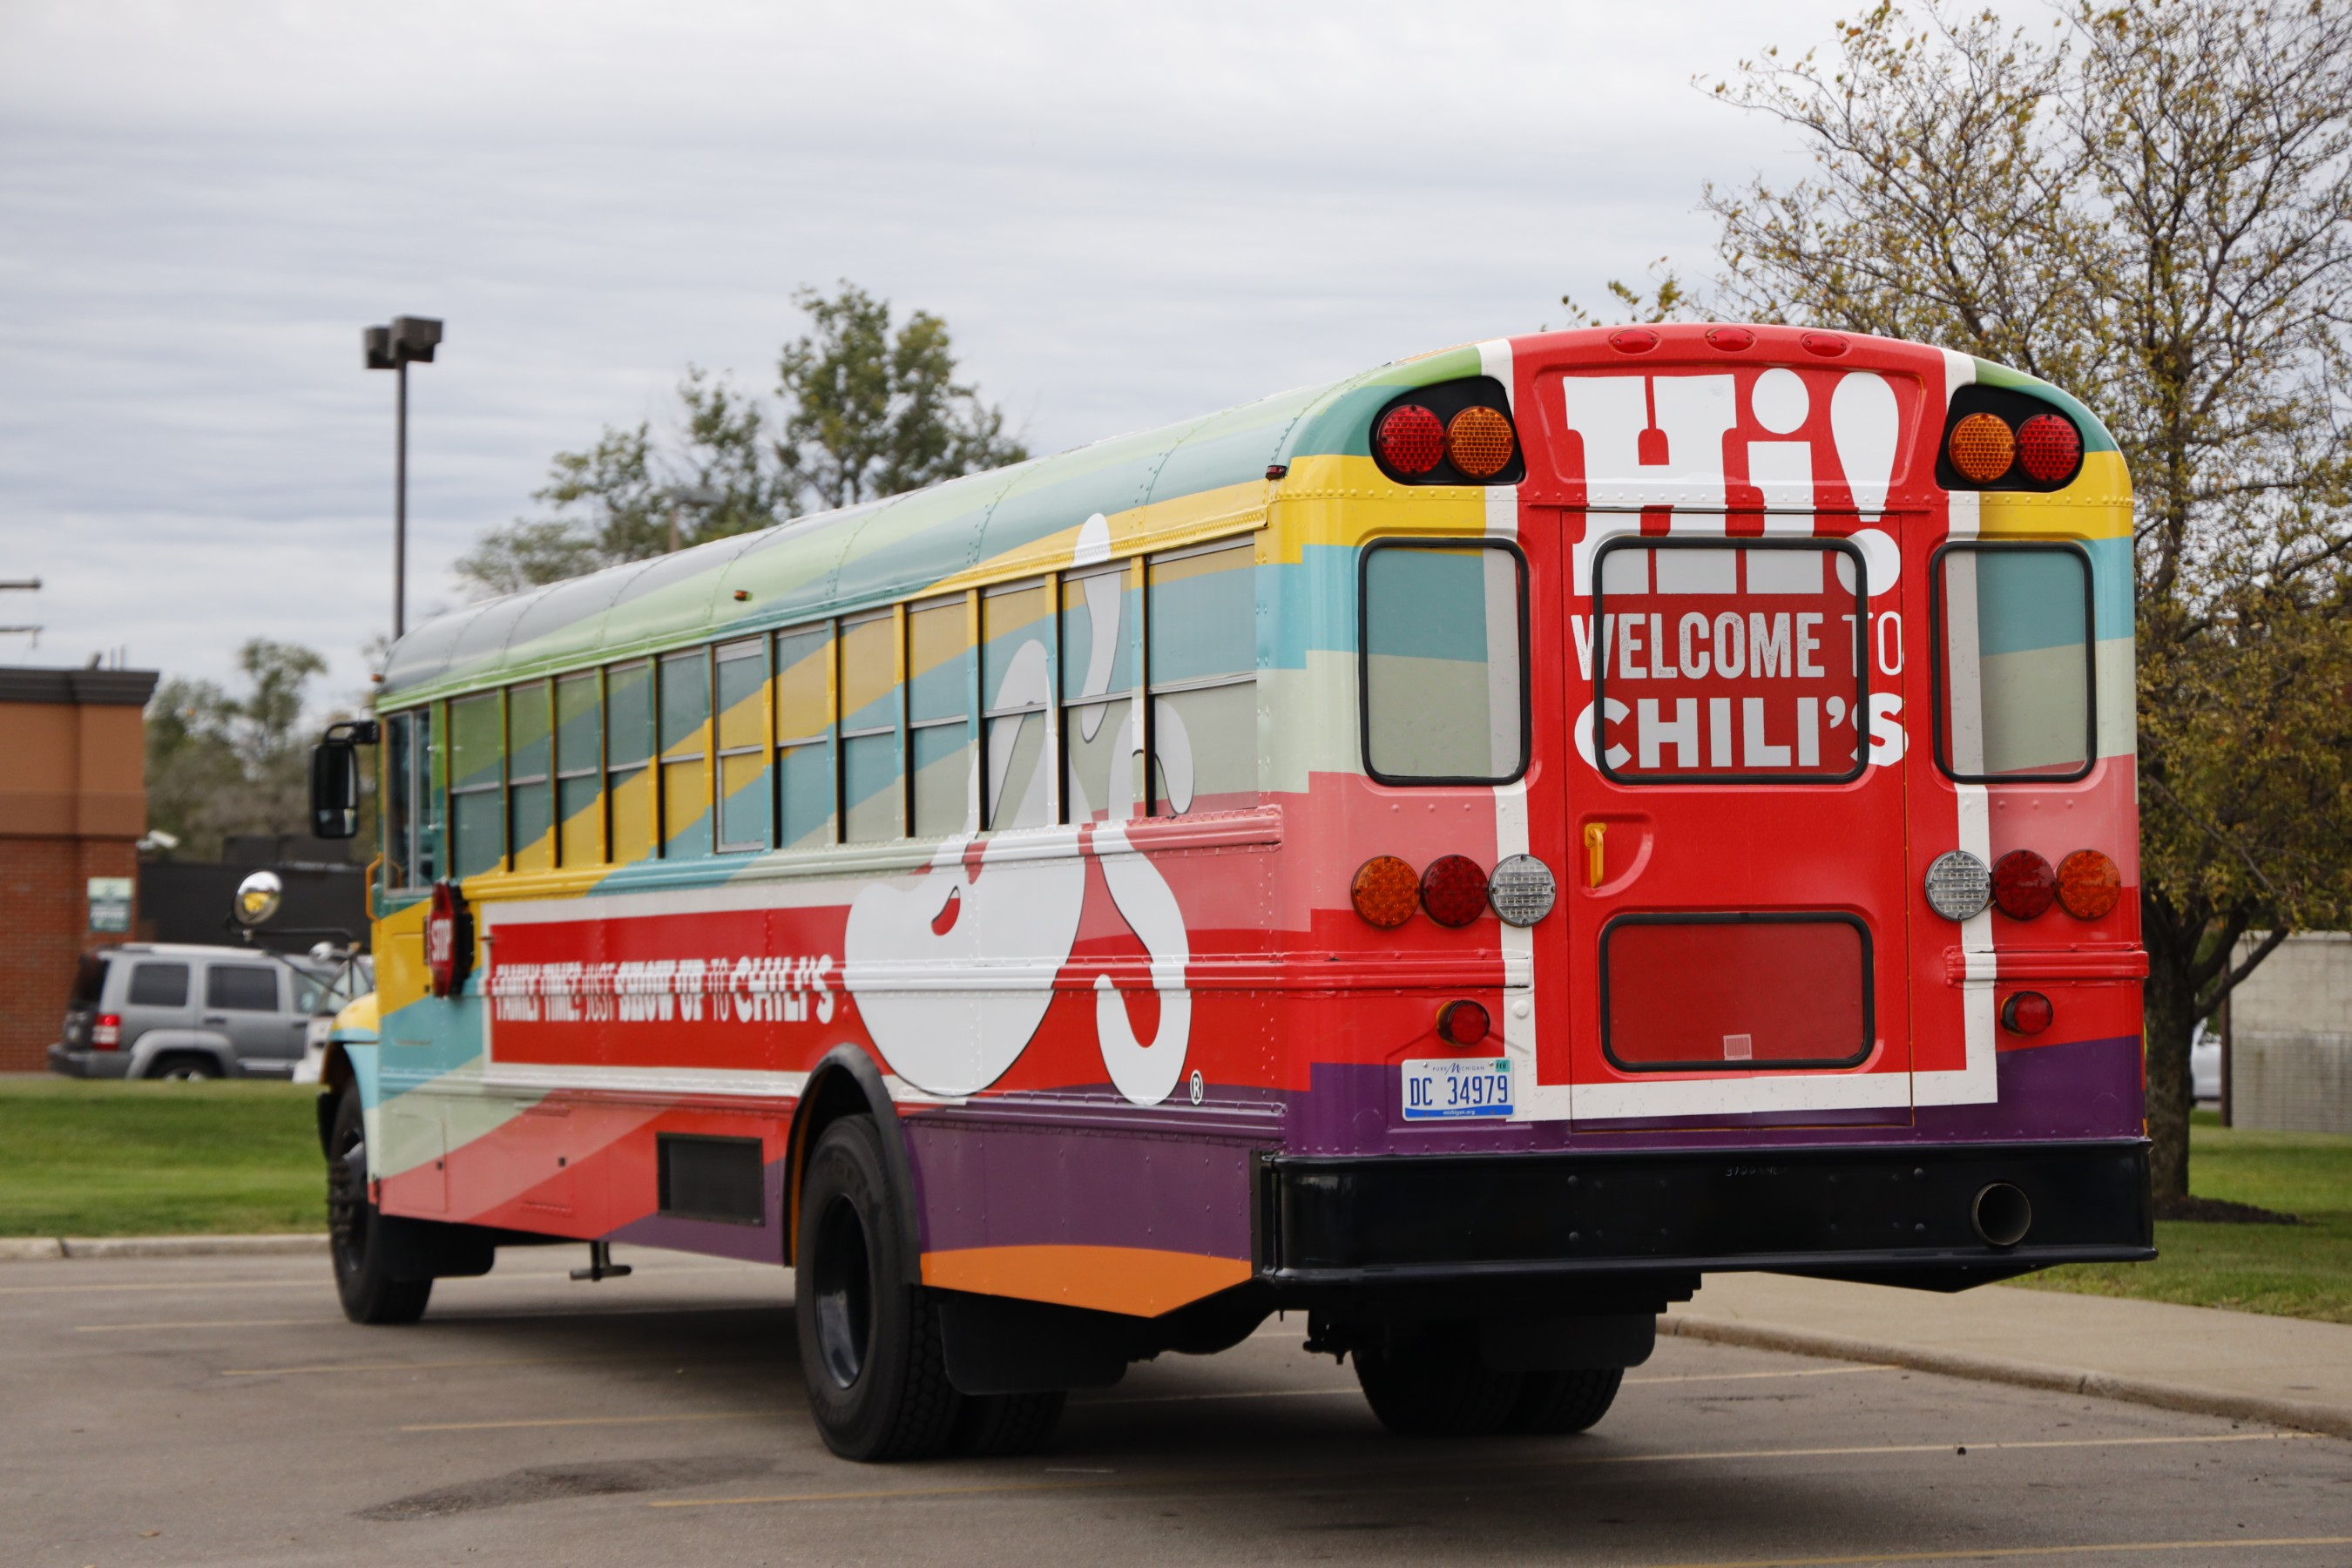 Chili's surprise and delights loyalty families at after school pick-up and dinner for a memorable afternoon on the custom Chili's school bus!